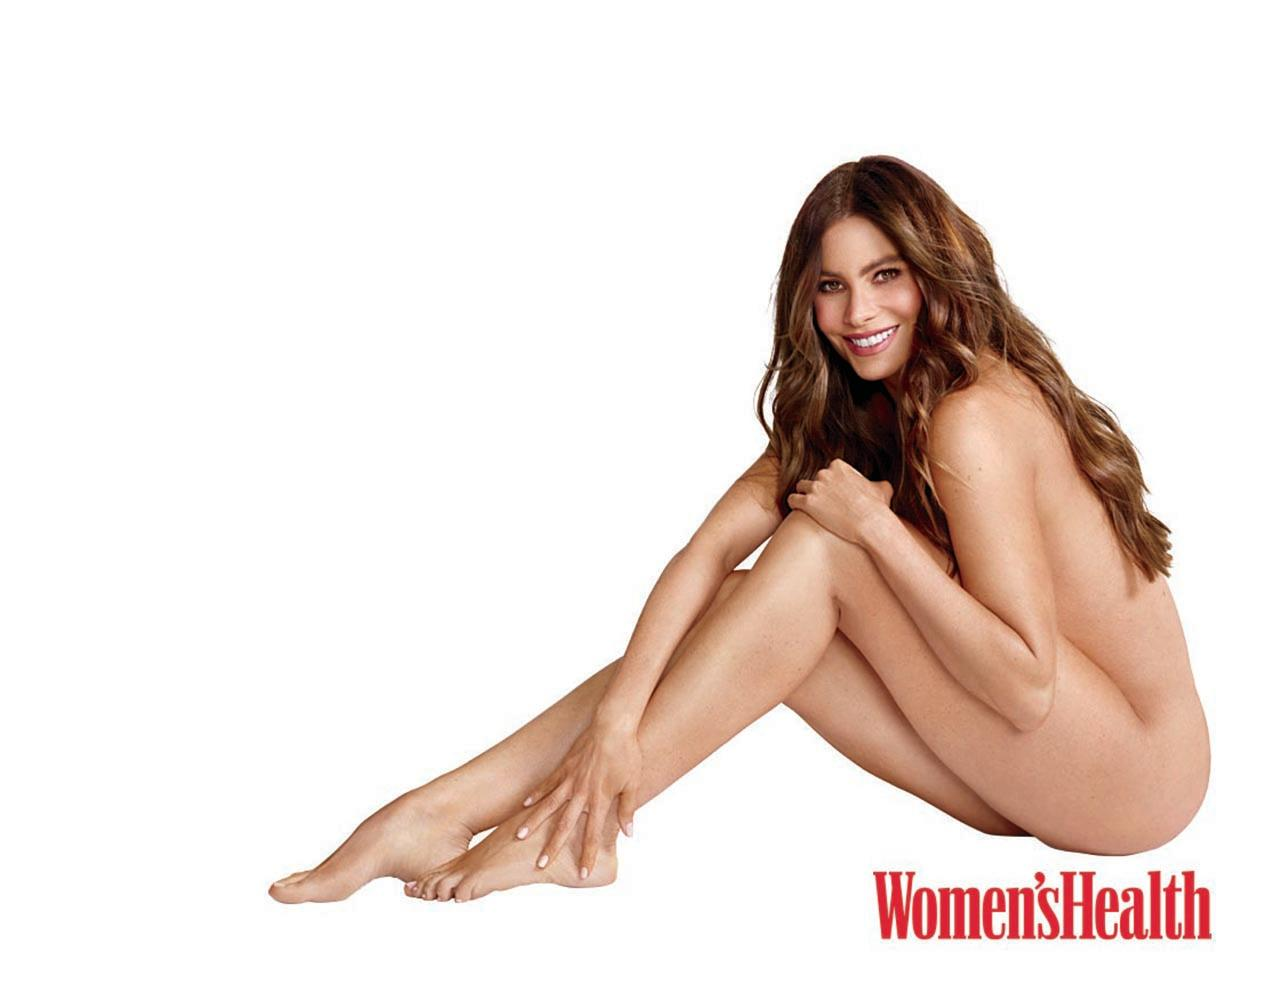 Sofia Vergara in the September issue of Women's Health.